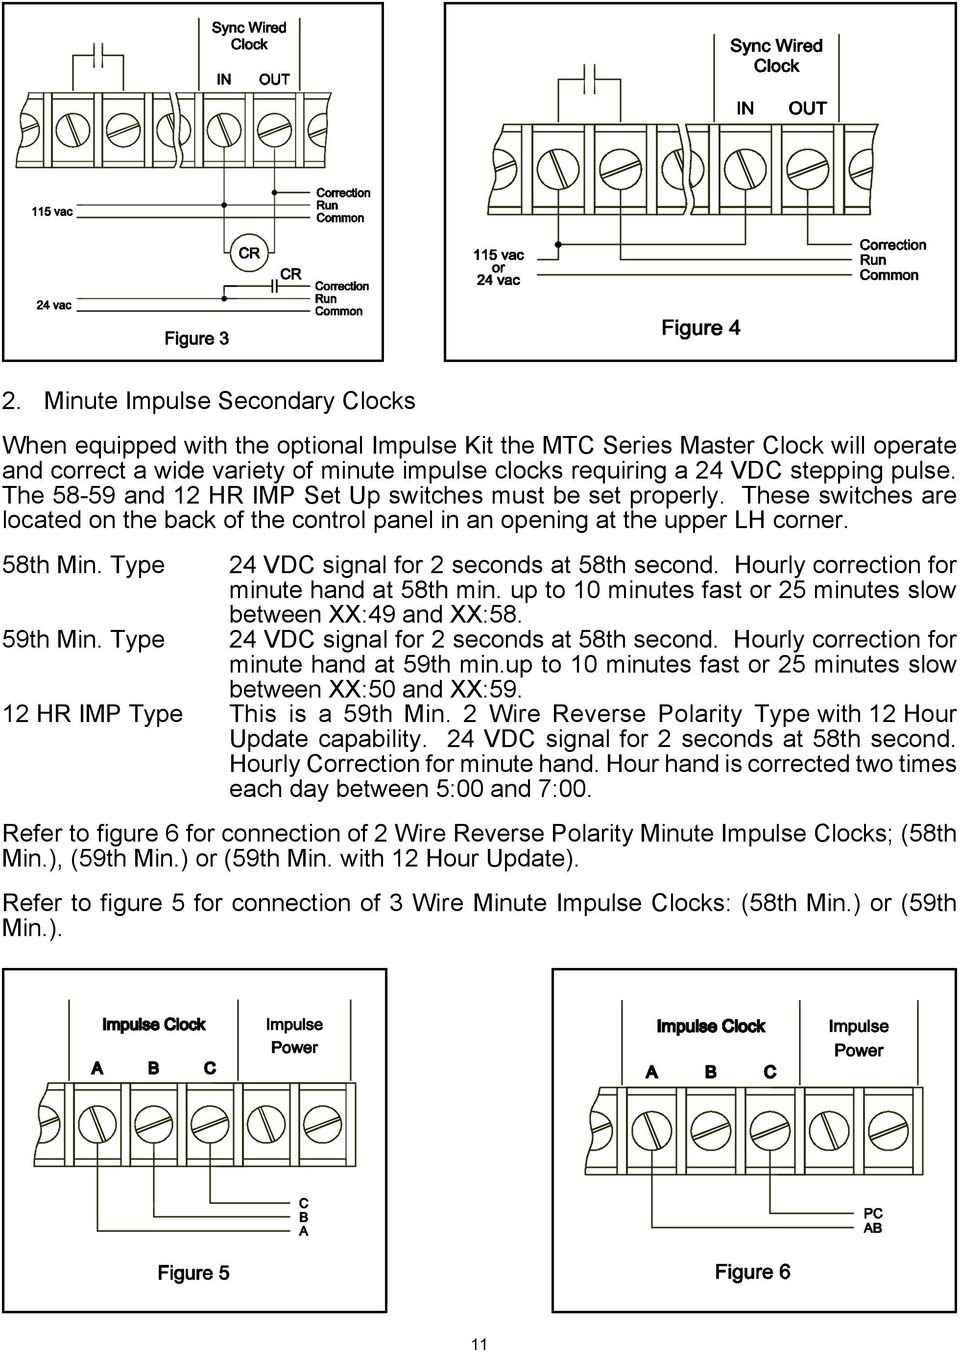 950 Apollo Keypad Wiring Diagram Electrical Diagrams Time Clock Switch Master Mtc 200 400 600 Users Manual Pdf Software